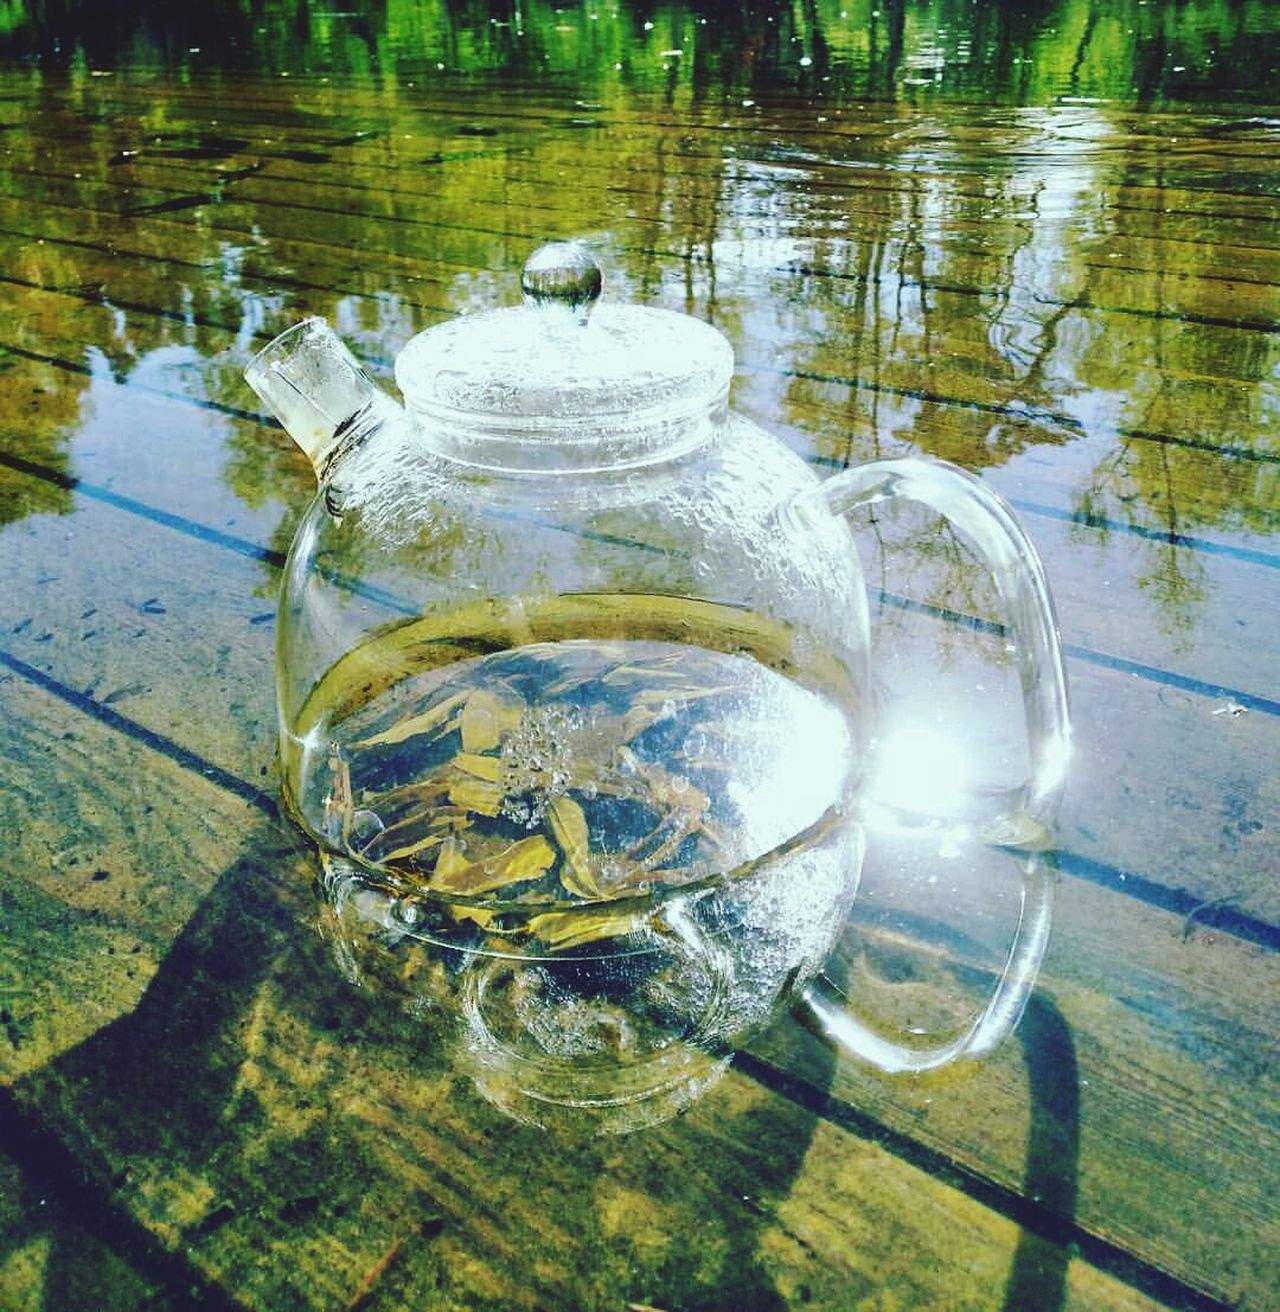 Water Refreshment Drink High Angle View No People Drinking Glass Day Outdoors Close-up Freshness Reflection Colour Of Life Nature Tea TeaCup Refreshment Sunlight Healthy Lifestyle Tea Is Healthy Beauty Wellbeing Tea - Hot Drink Gold Colored Tea Light Beauty In Nature